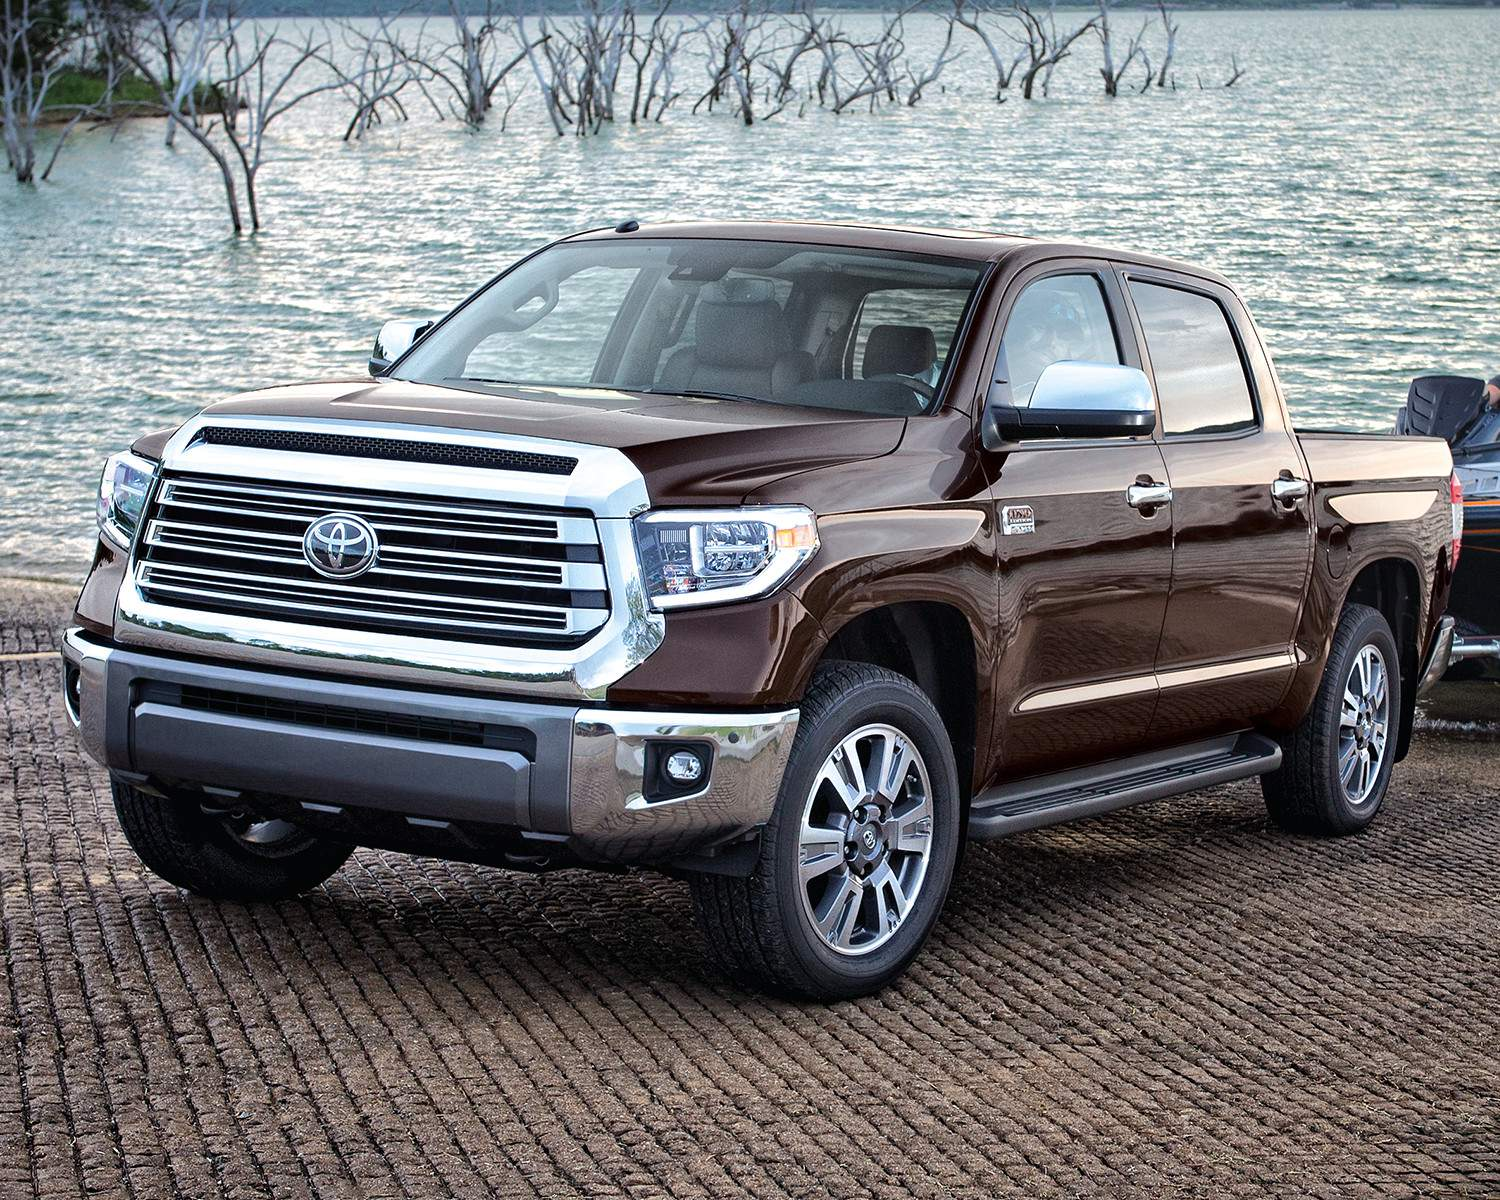 toyota-2018-tundra-4×4-crewmax-1794-edition-smoked-mesquite-left-3-4-l